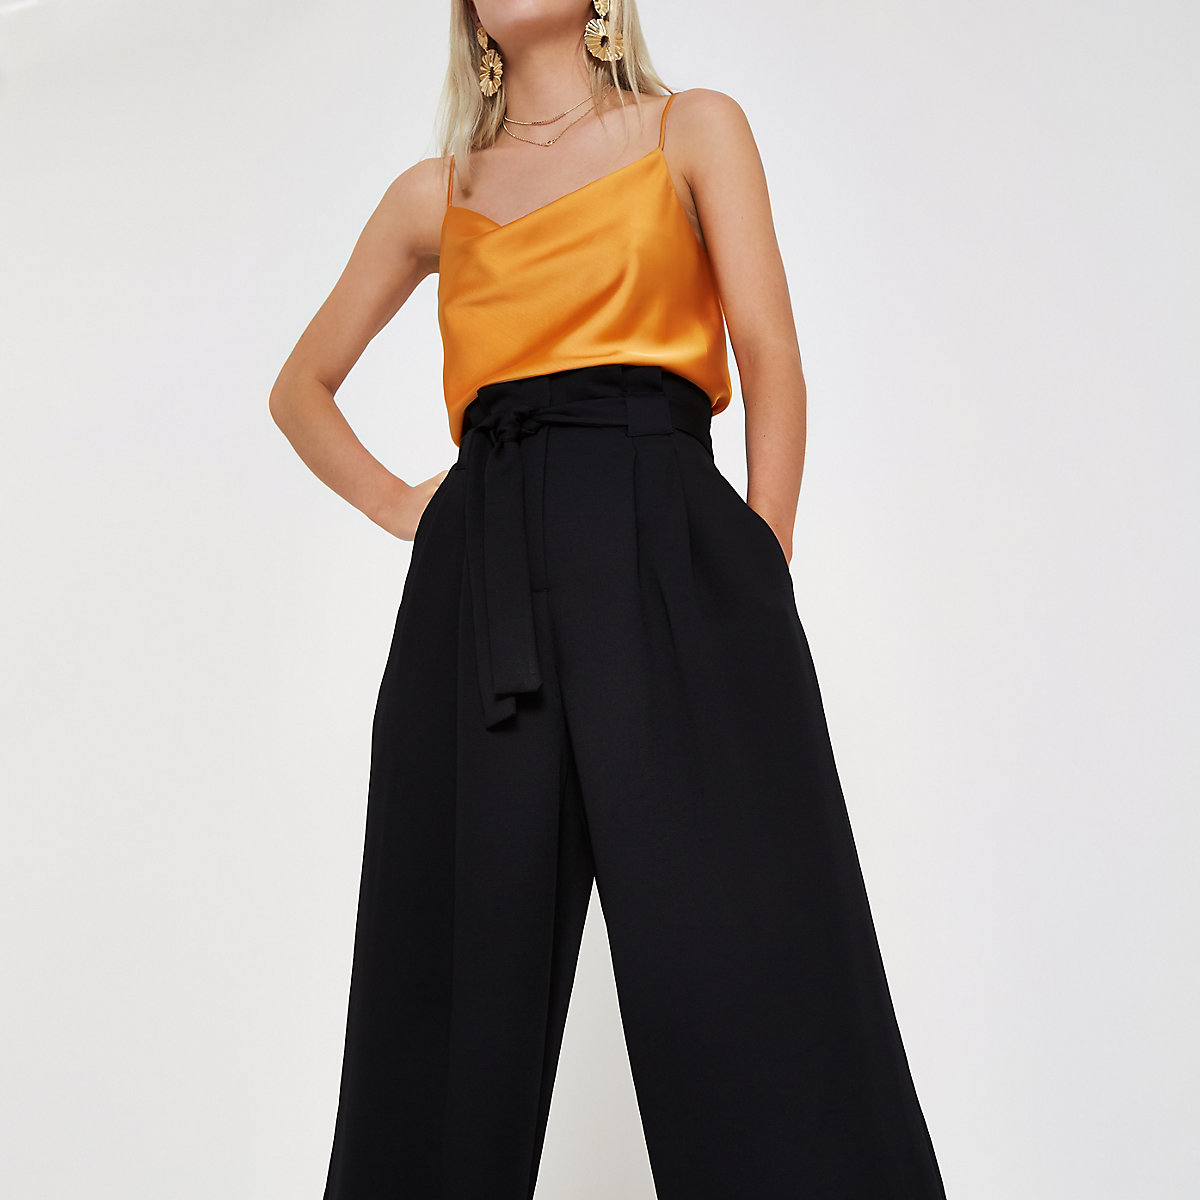 dc404957754cd4 Petite black paperbag waist wide leg trousers - Wide Leg Trousers - Trousers  - women